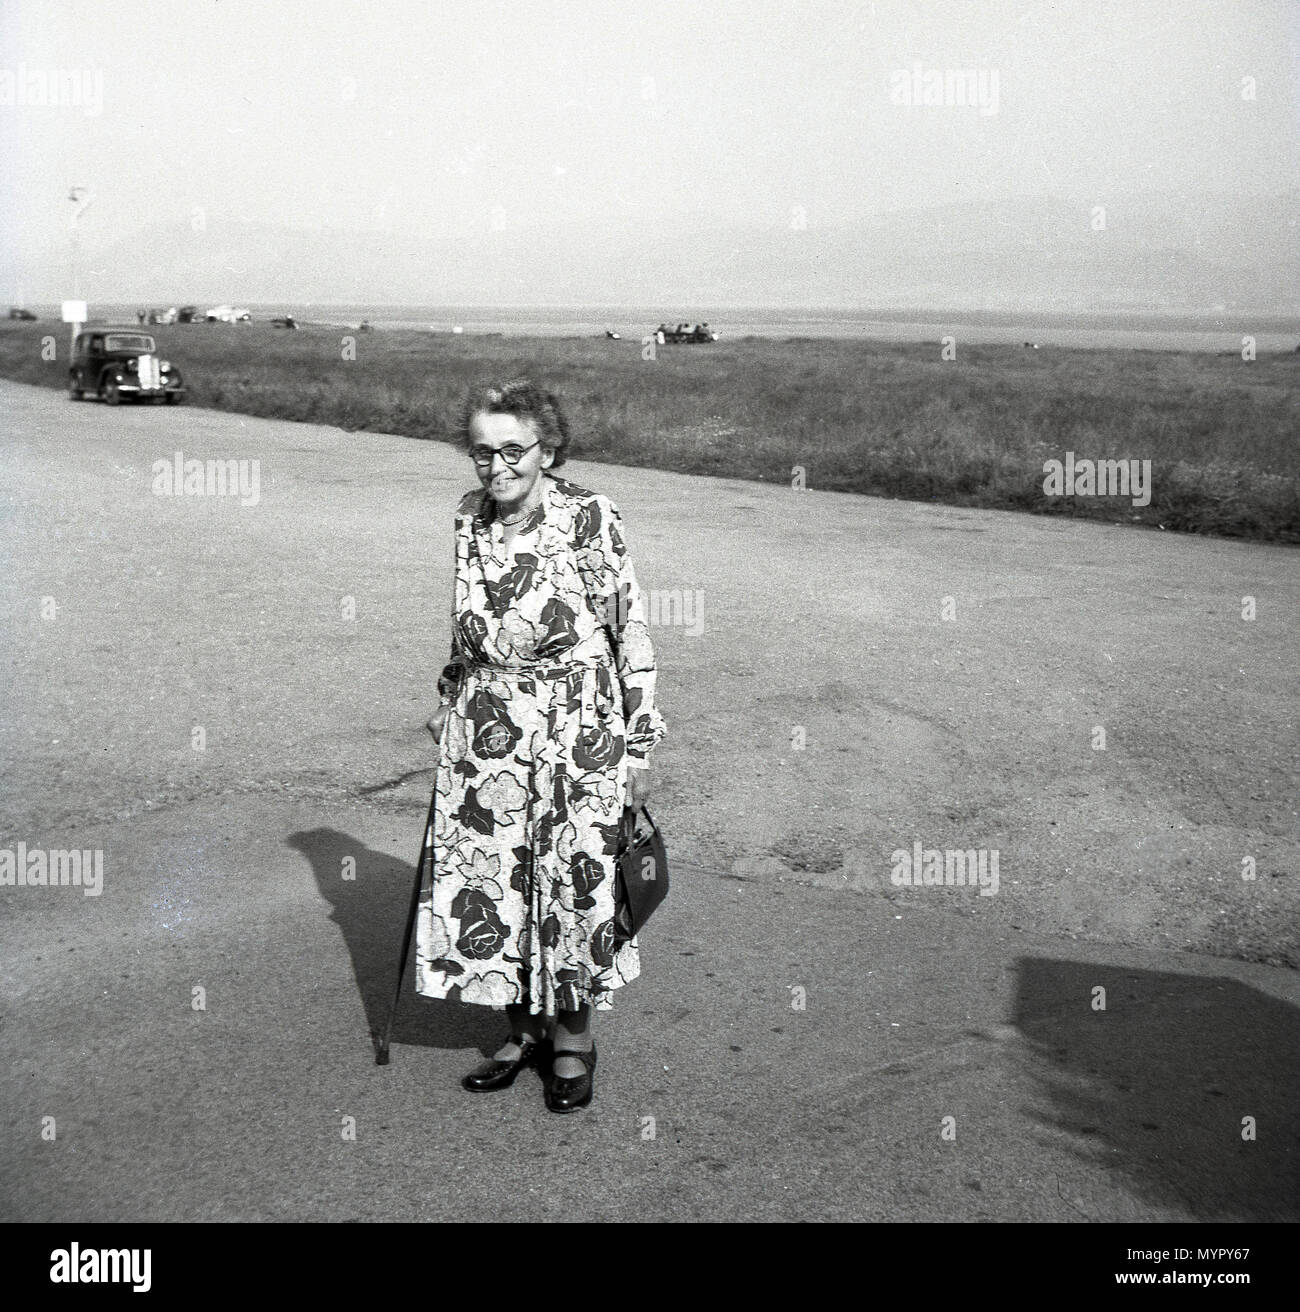 1953, July, England, historical picture of an elderly English lady with stick wearing a flowery dress standing outside on a road near the coast. - Stock Image